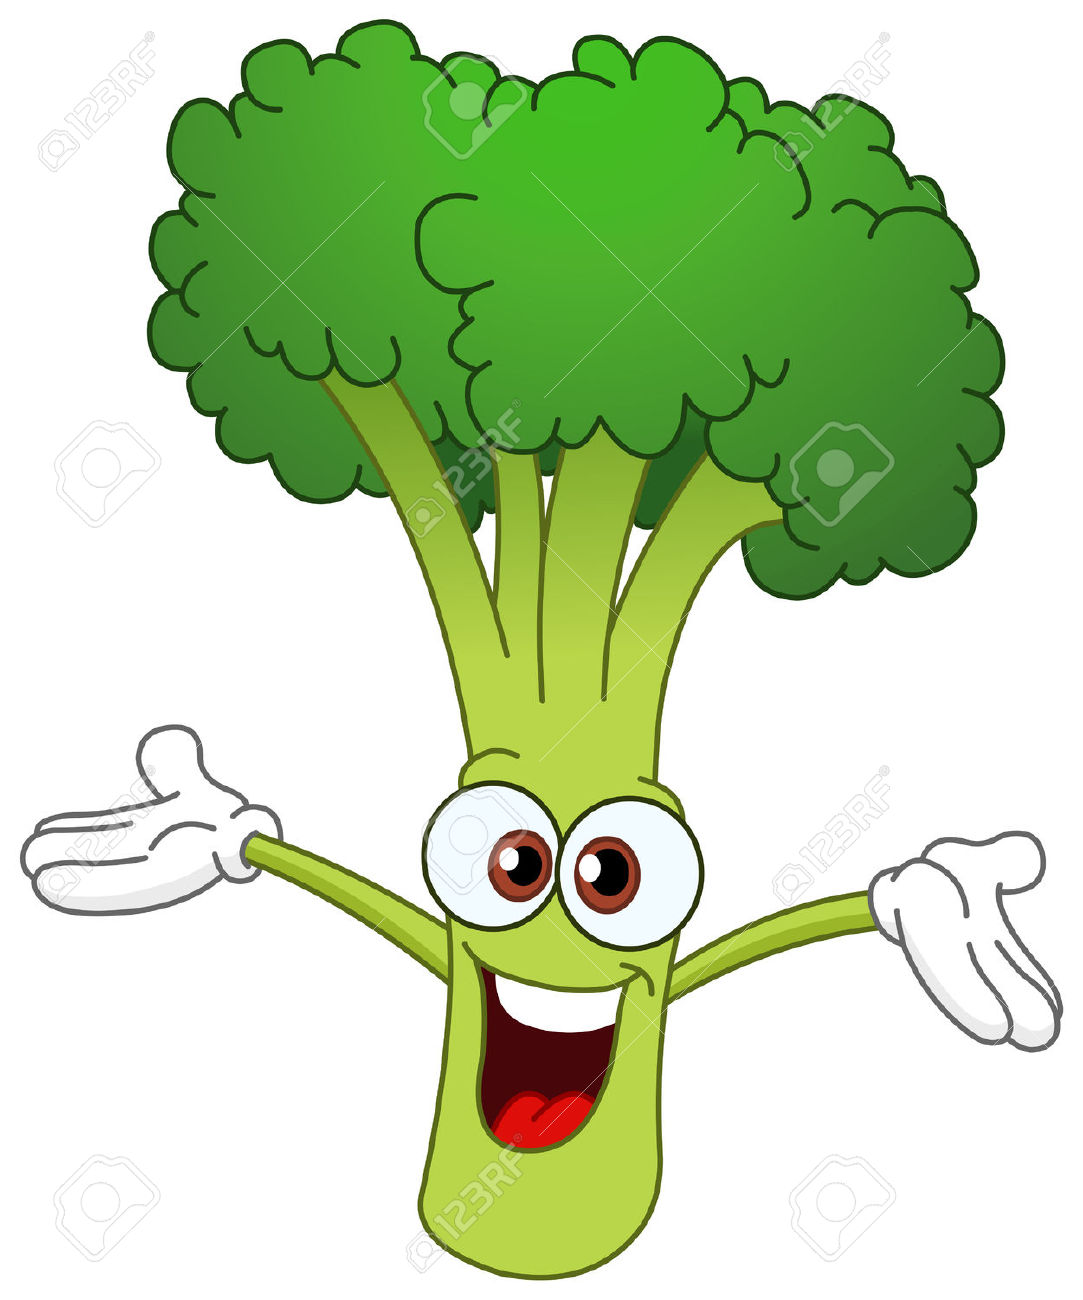 Cheerful Cartoon Broccoli Raising His Hands Royalty Free Cliparts.